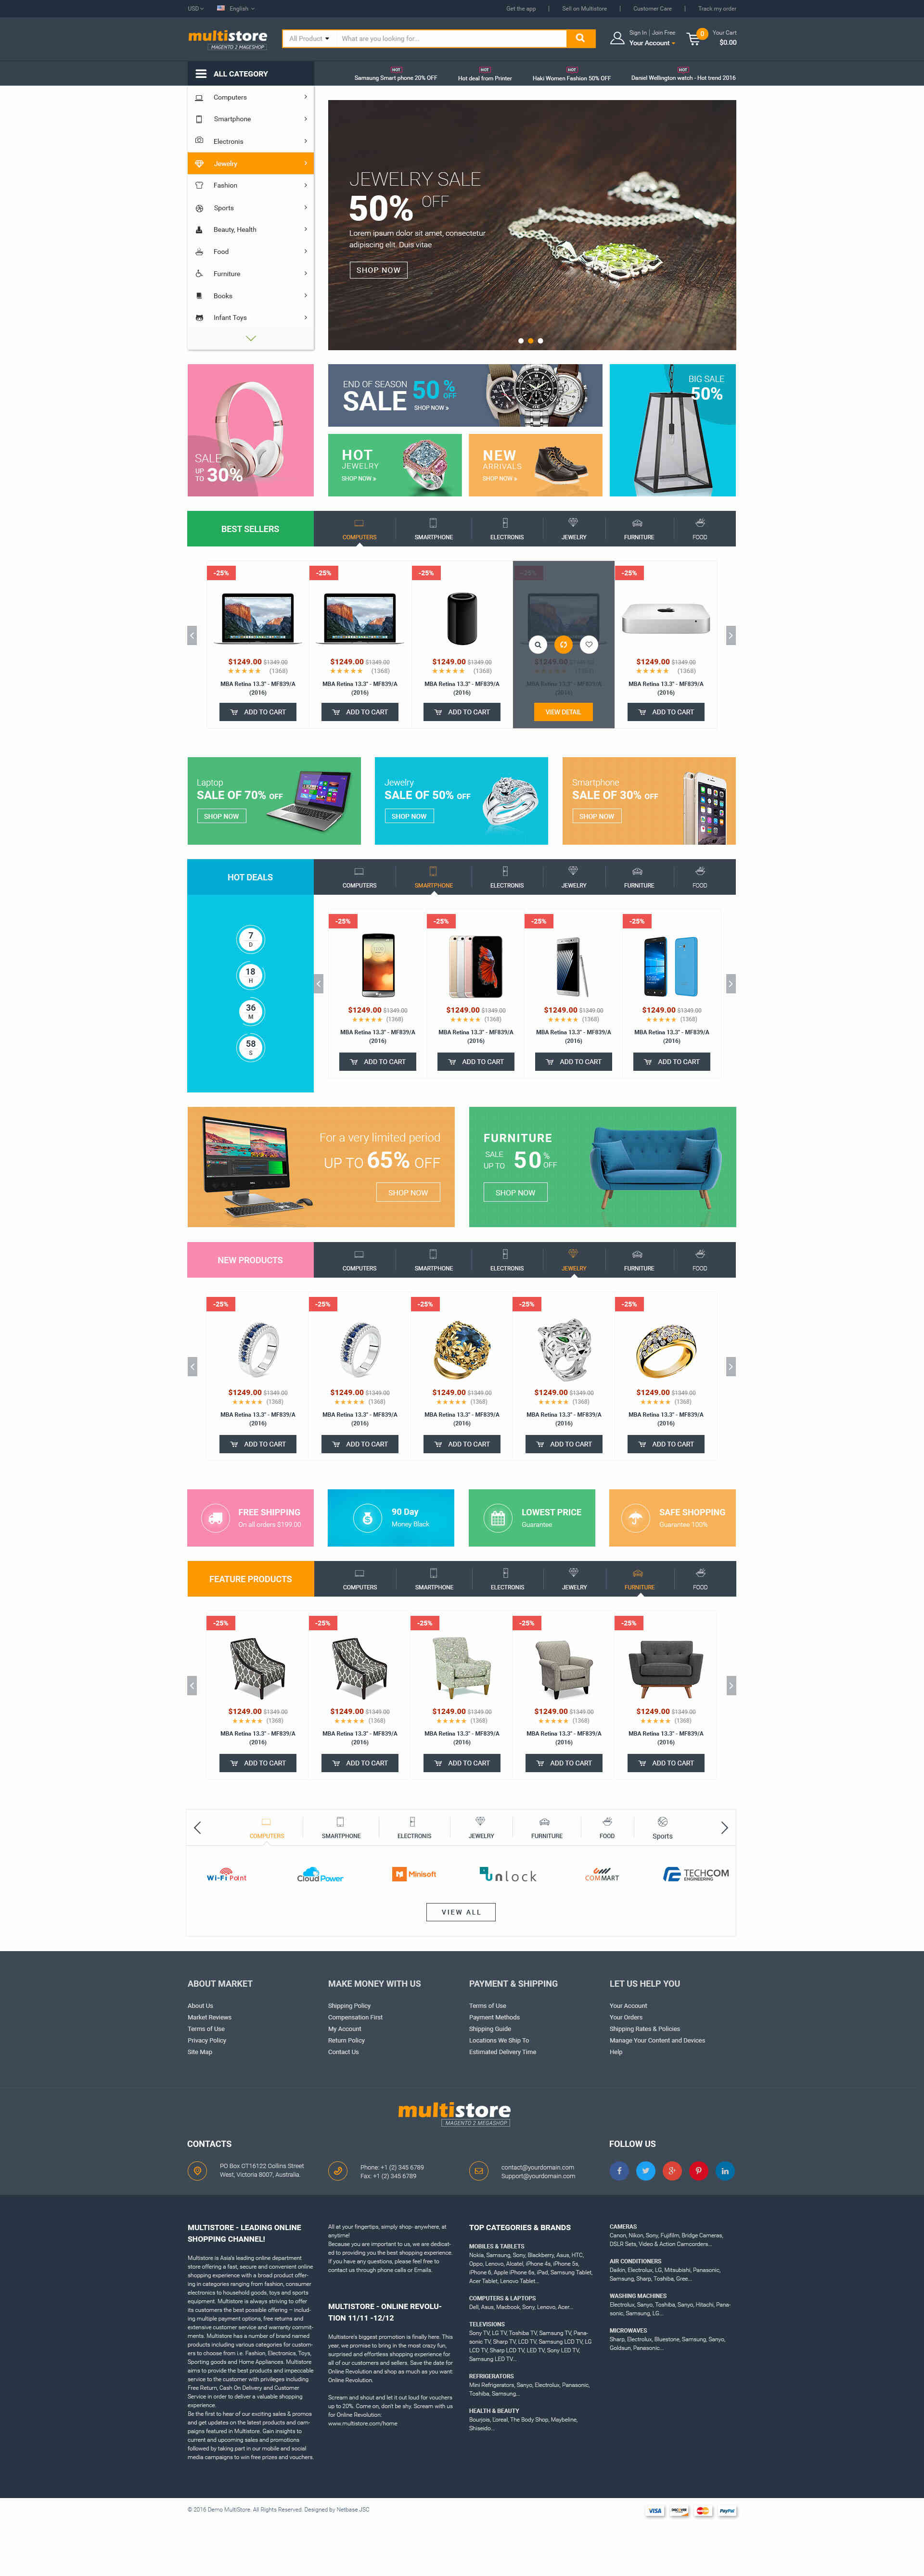 MULTISTORE HOME PAGE